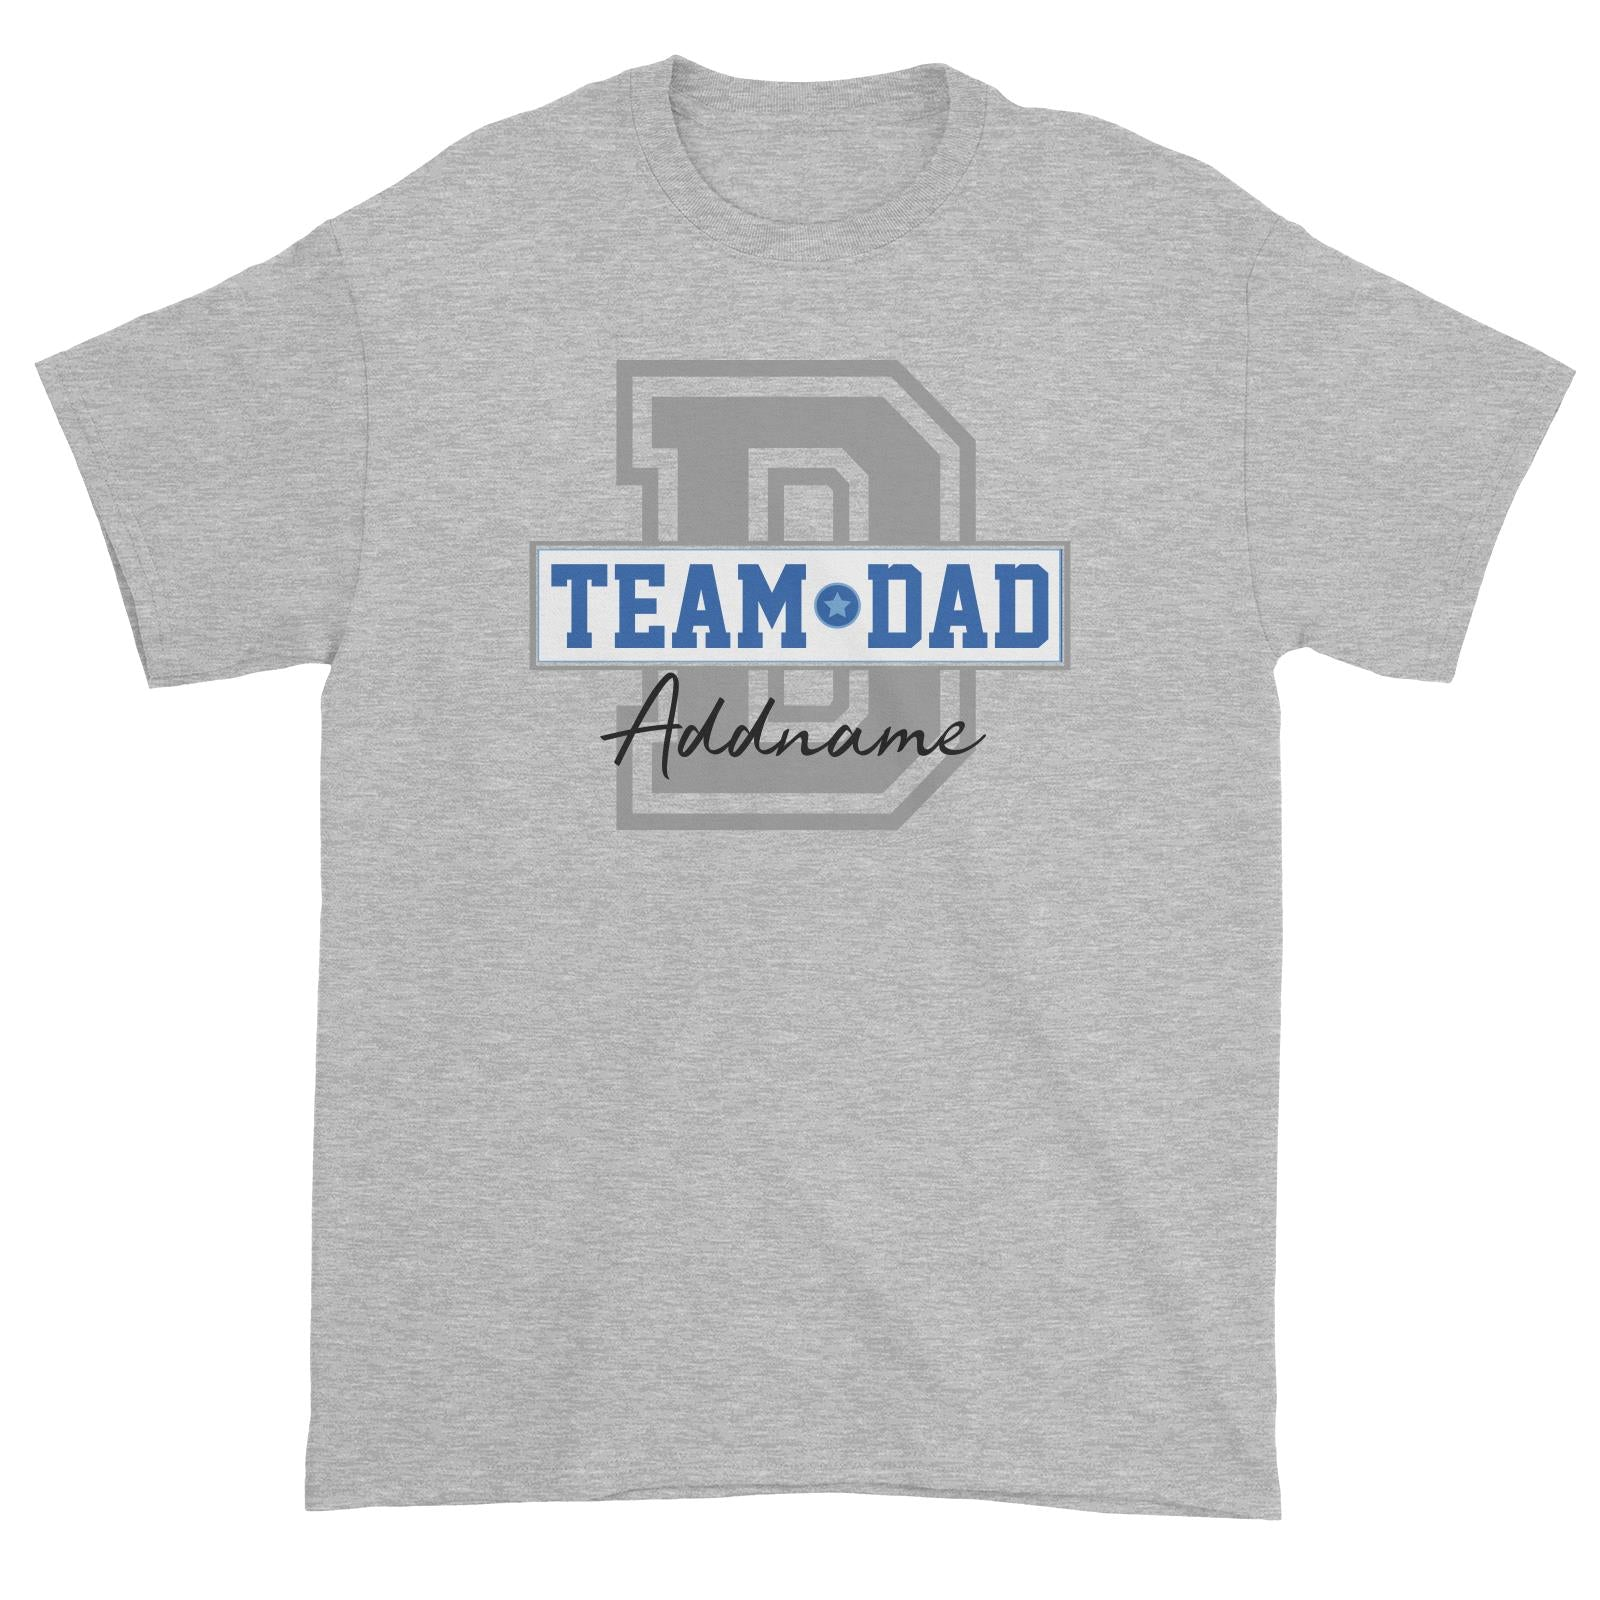 Team Dad Addname Unisex T-Shirt